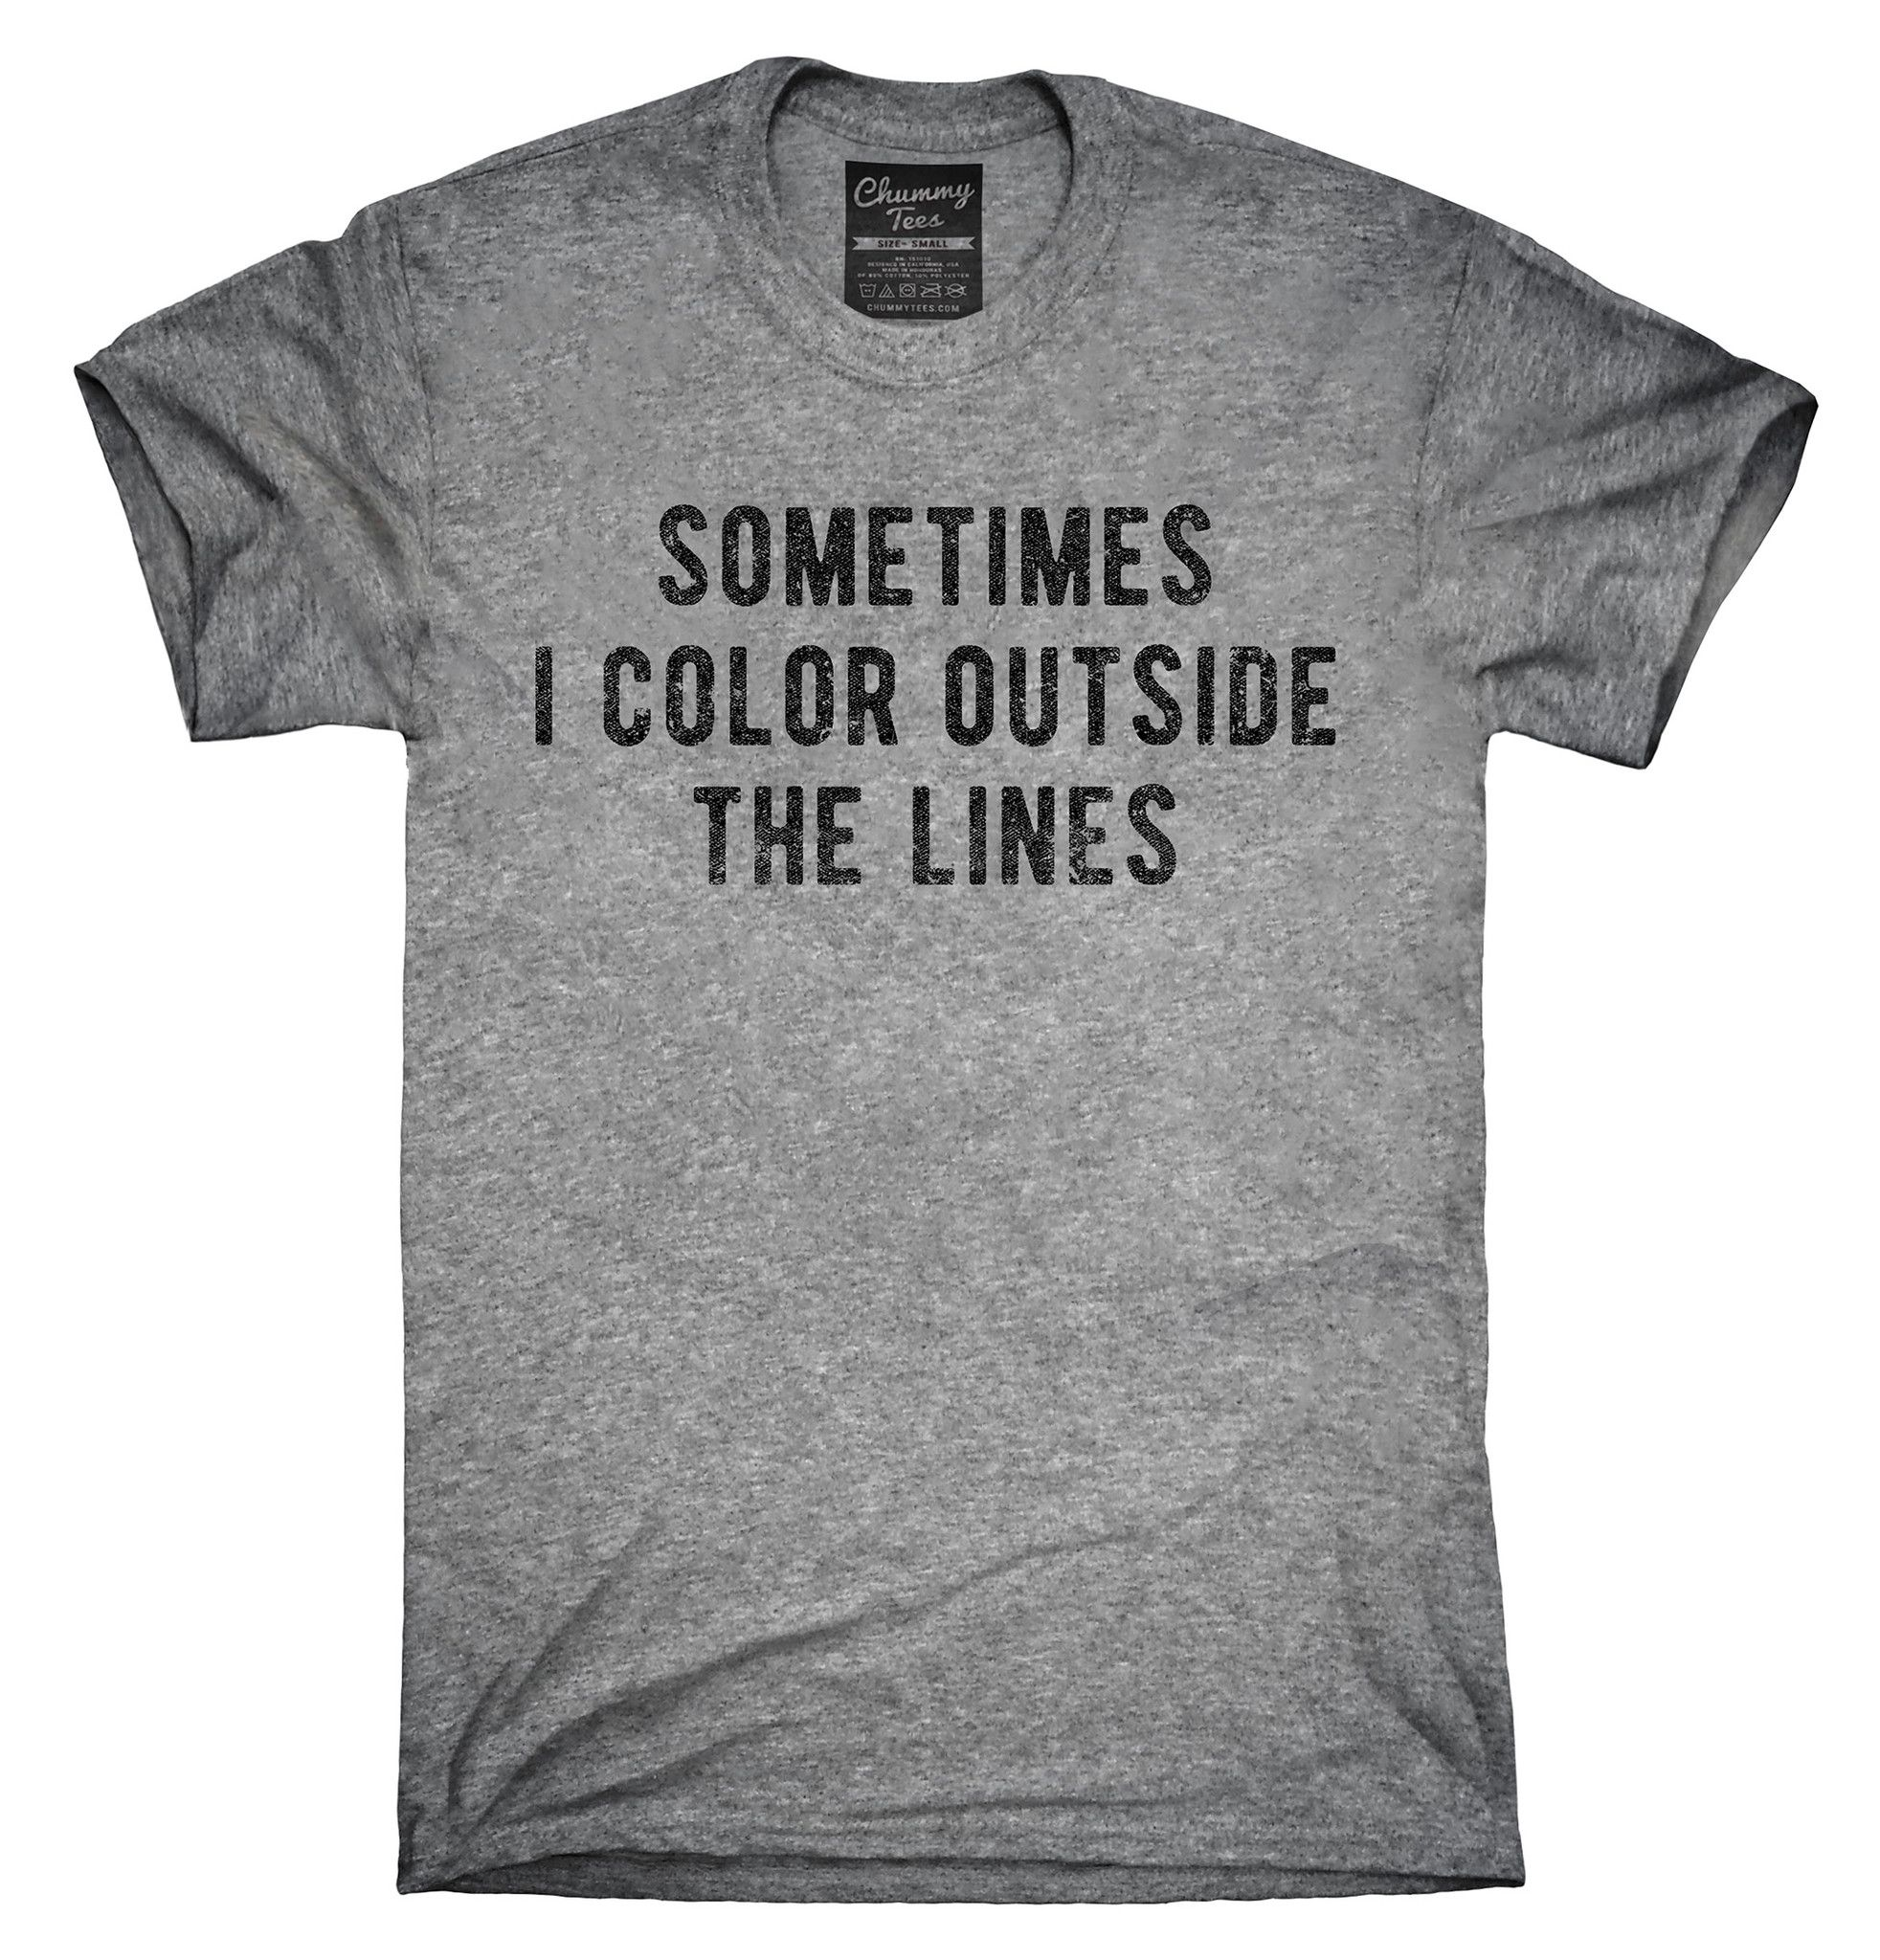 Sometimes I Color Outside The Lines Shirt, Hoodies, Tanktops